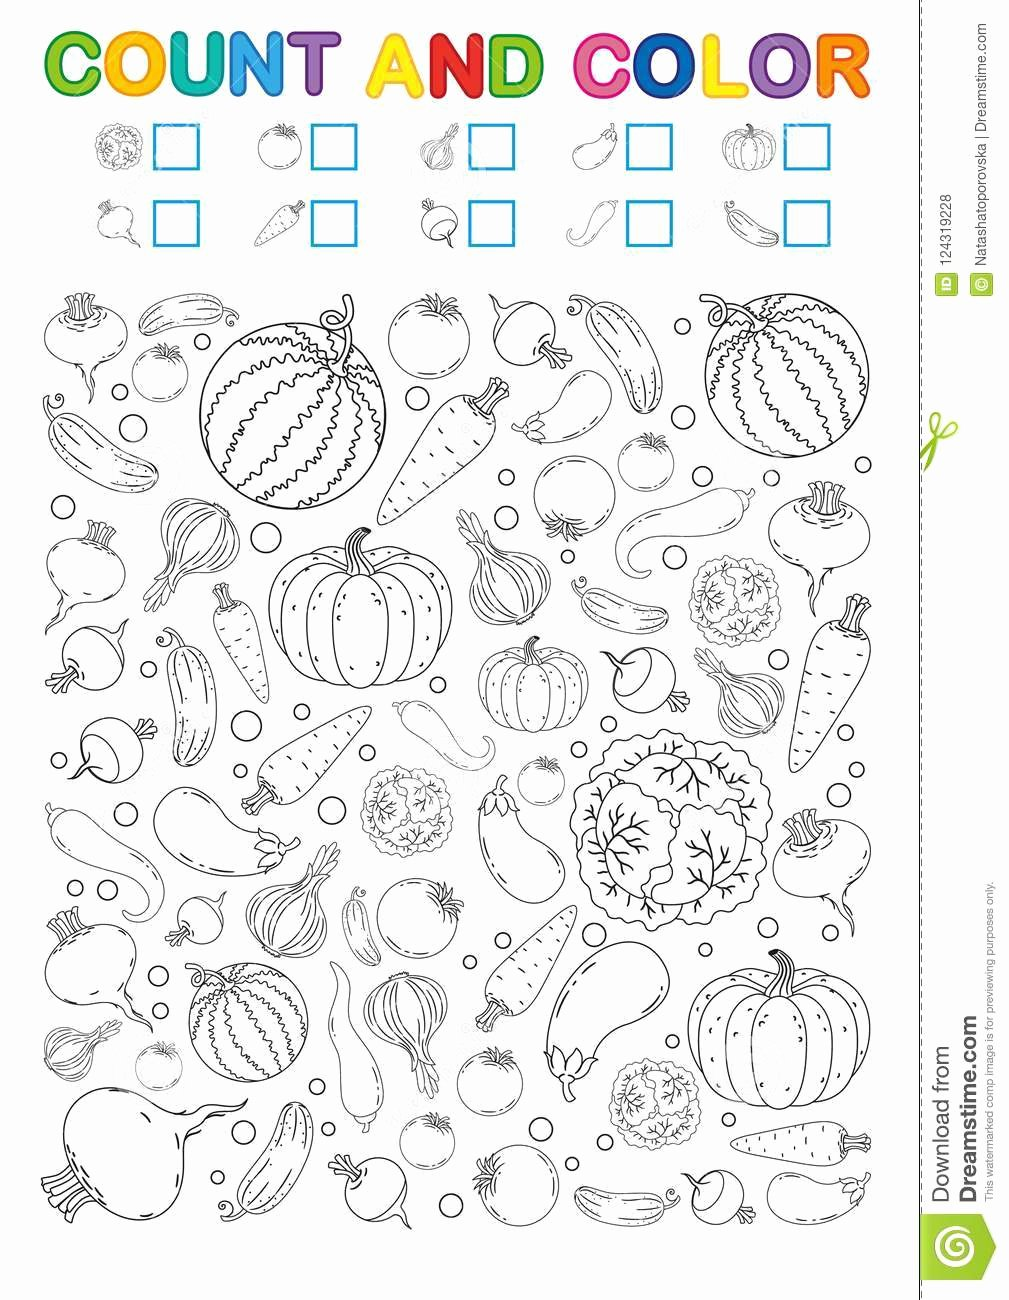 Vegetables Worksheets for Preschoolers Inspirational Coloring Book Page Count and Color Printable Worksheet for